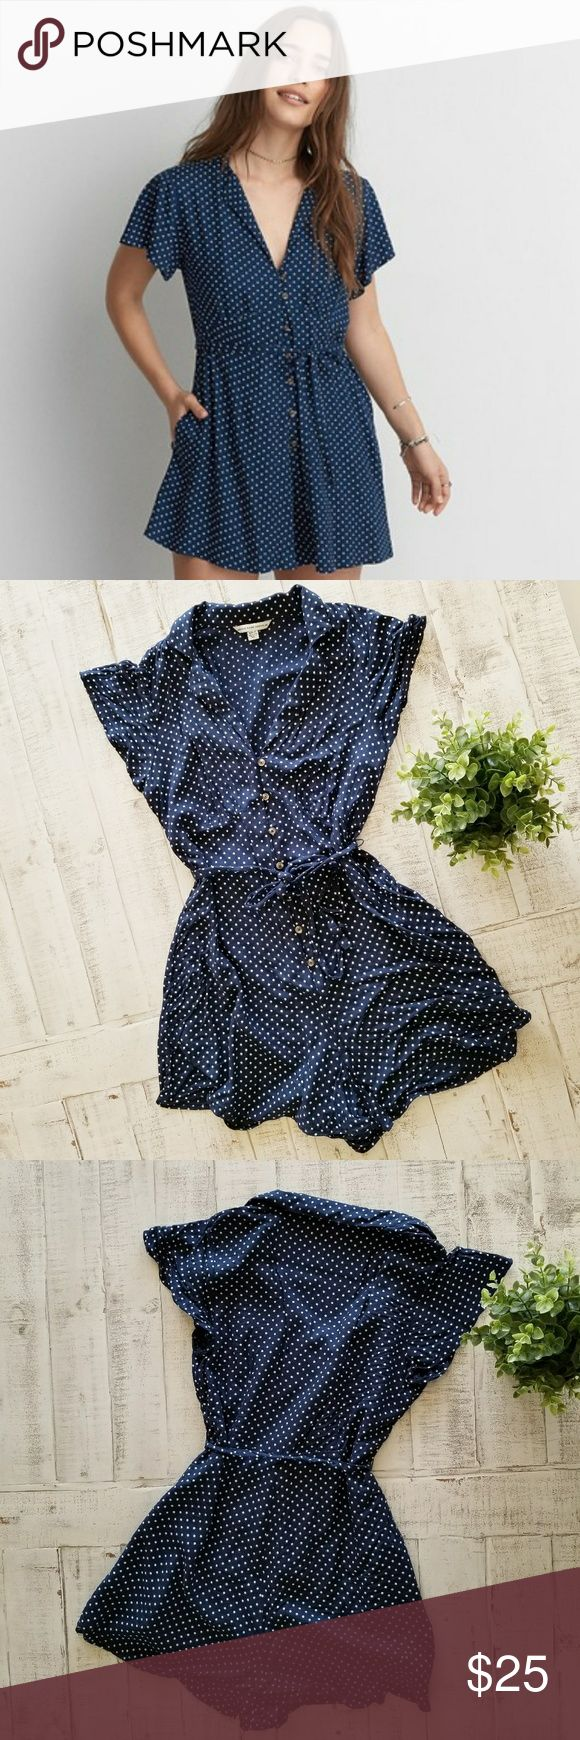 American Eagle Polka Dot Romper with Pockets Adorable American Eagle navy with white polka dots romper! This is so cute and so soft! Perfect by itself, with a cardigan, heels, or sneakers! It just works with any occasion! Two pockets one on each side, elastic and button closure, and tie waist. Great condition no holes or tears!  *measurements are approximate  Pit to pit when full buttoned: 16.5 inches  Shoulder to hem: 29.5 inches Sleeve: 6 inches Inseam: 2.5 inches American Eagle Outfitters…